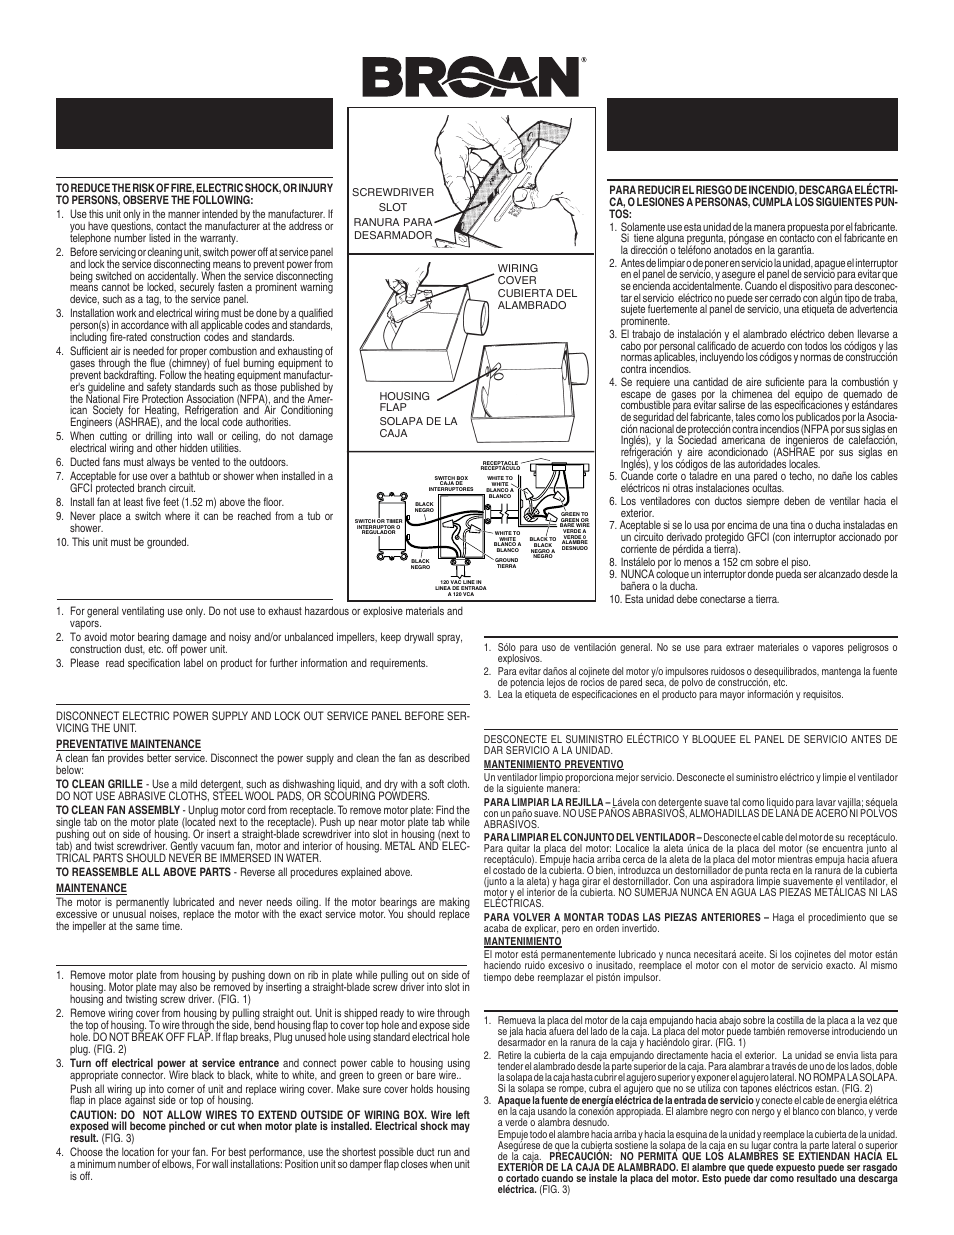 medium resolution of broan 671 user manual 2 pages